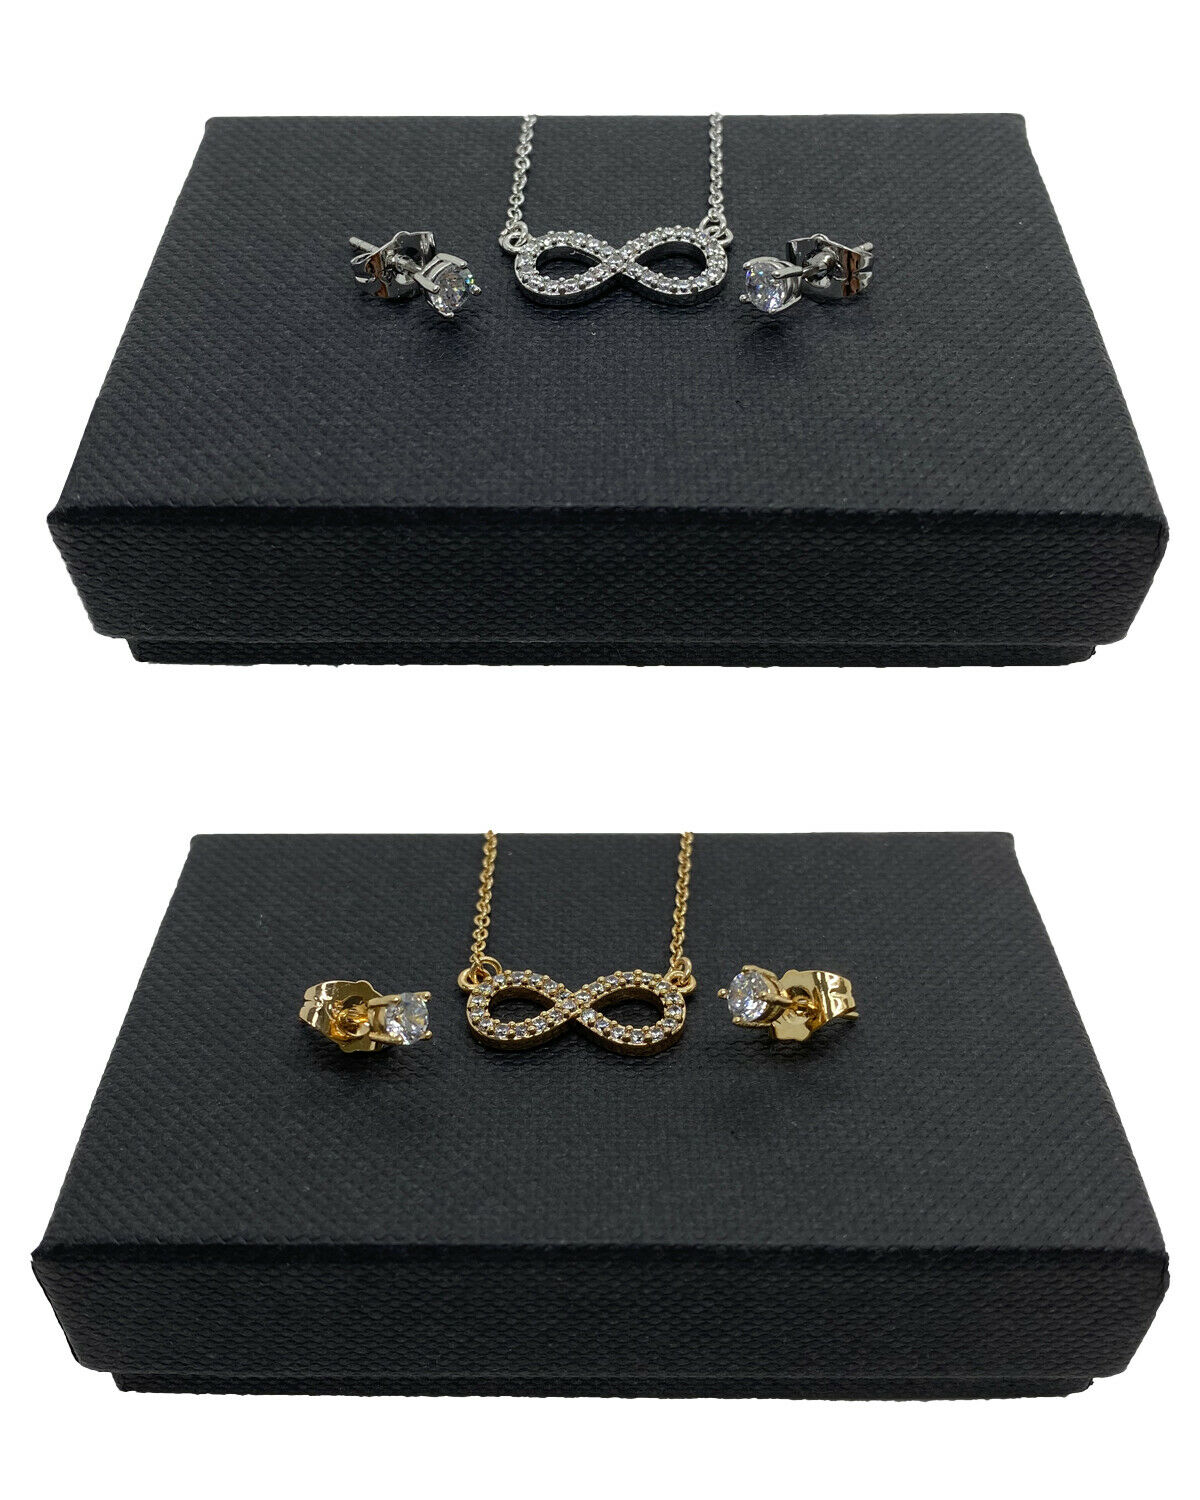 Infinity Necklace Chain Crystal Pendant Silver/Gold Filled Women Ladies Gift